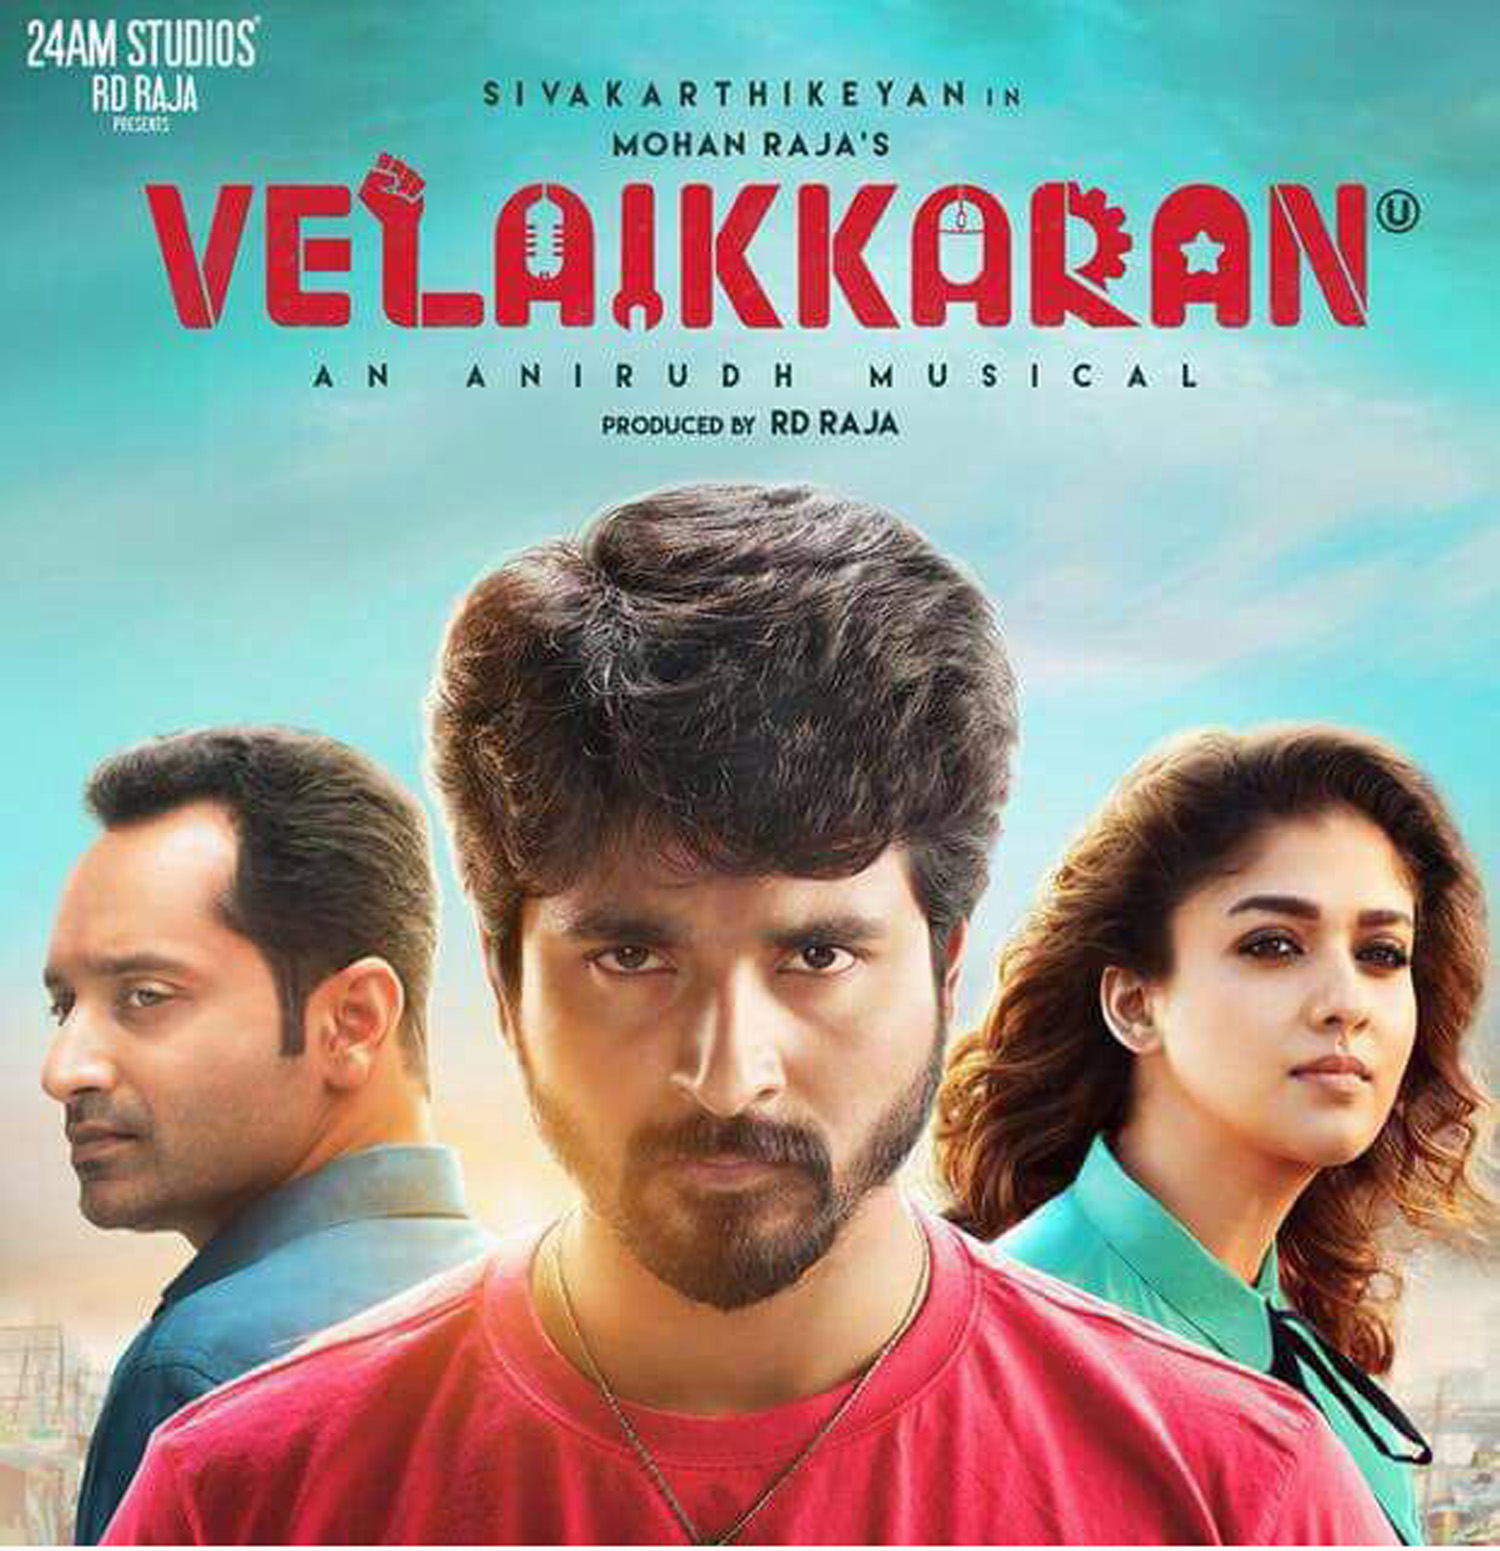 velaikkaran latest news, velaikkaran hit or flop, velaikkaran review, velaikkaran report, velaikkaran rating, velaikkaran audience response, velaikkaran movie, fahadh faasil latest news, fahadh faasil in velaikkaran, nayanthara latest news, nayanthara in velaikkaran, sivakarthikeyan latest news, sivakarthikeyan in velaikkaran